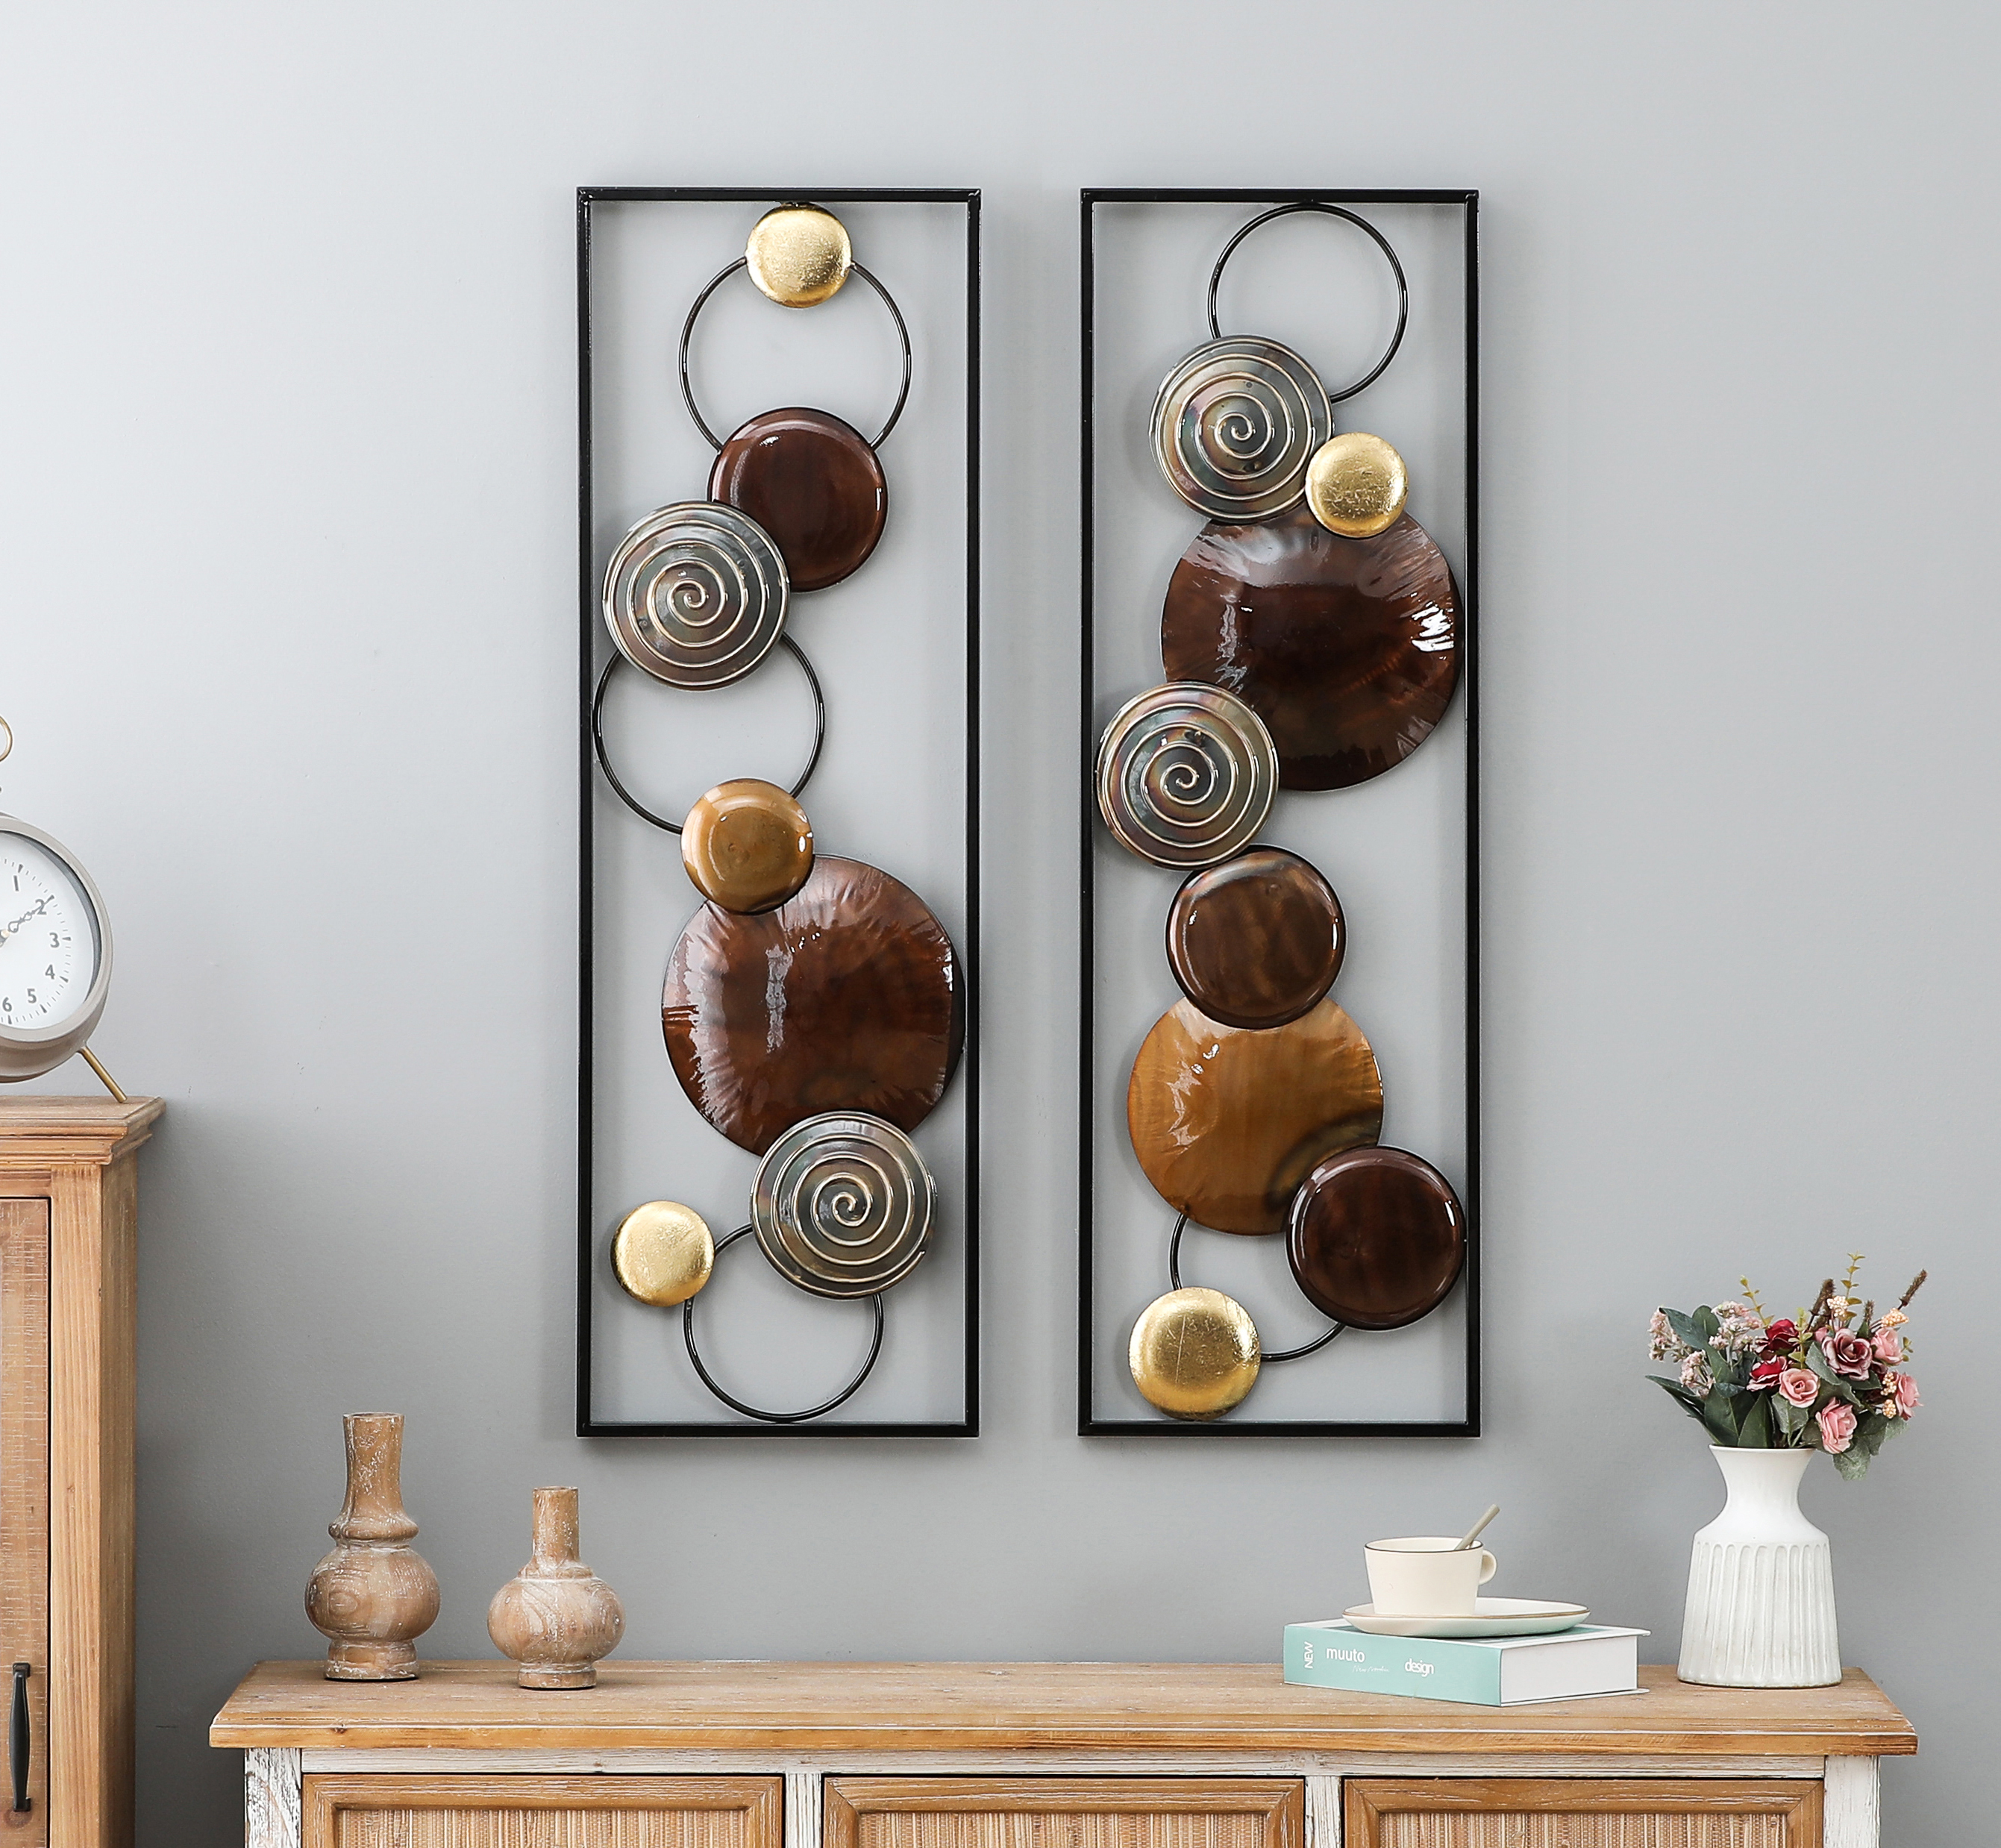 Luxen Home 2pc Abstract Metal Wall Panels